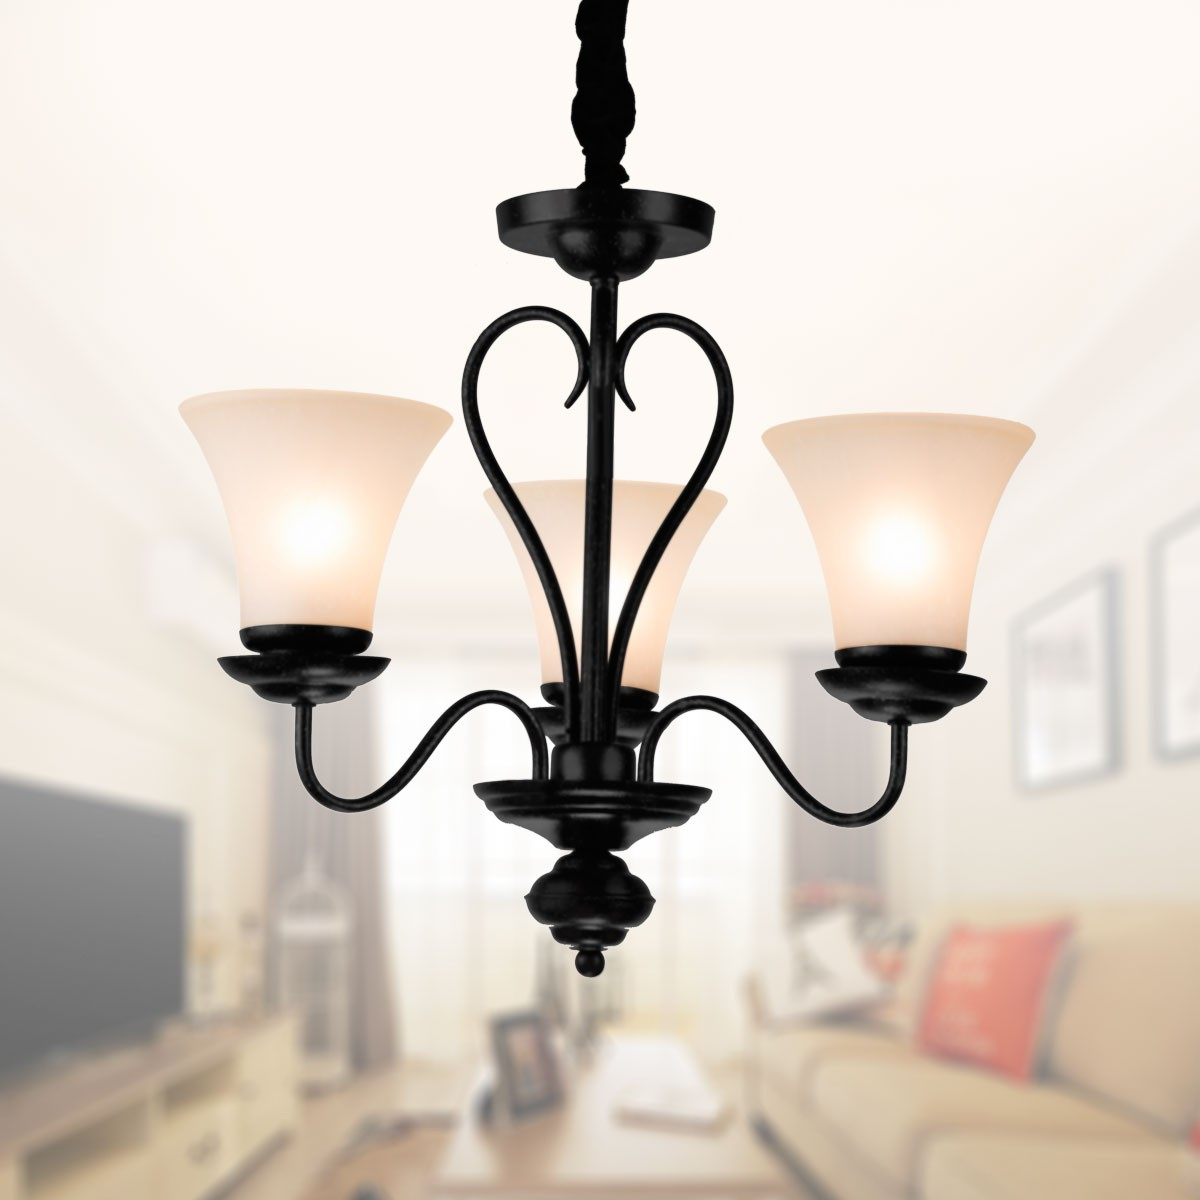 3 Light Black Wrought Iron Chandelier With Glass Shades Dk 2039